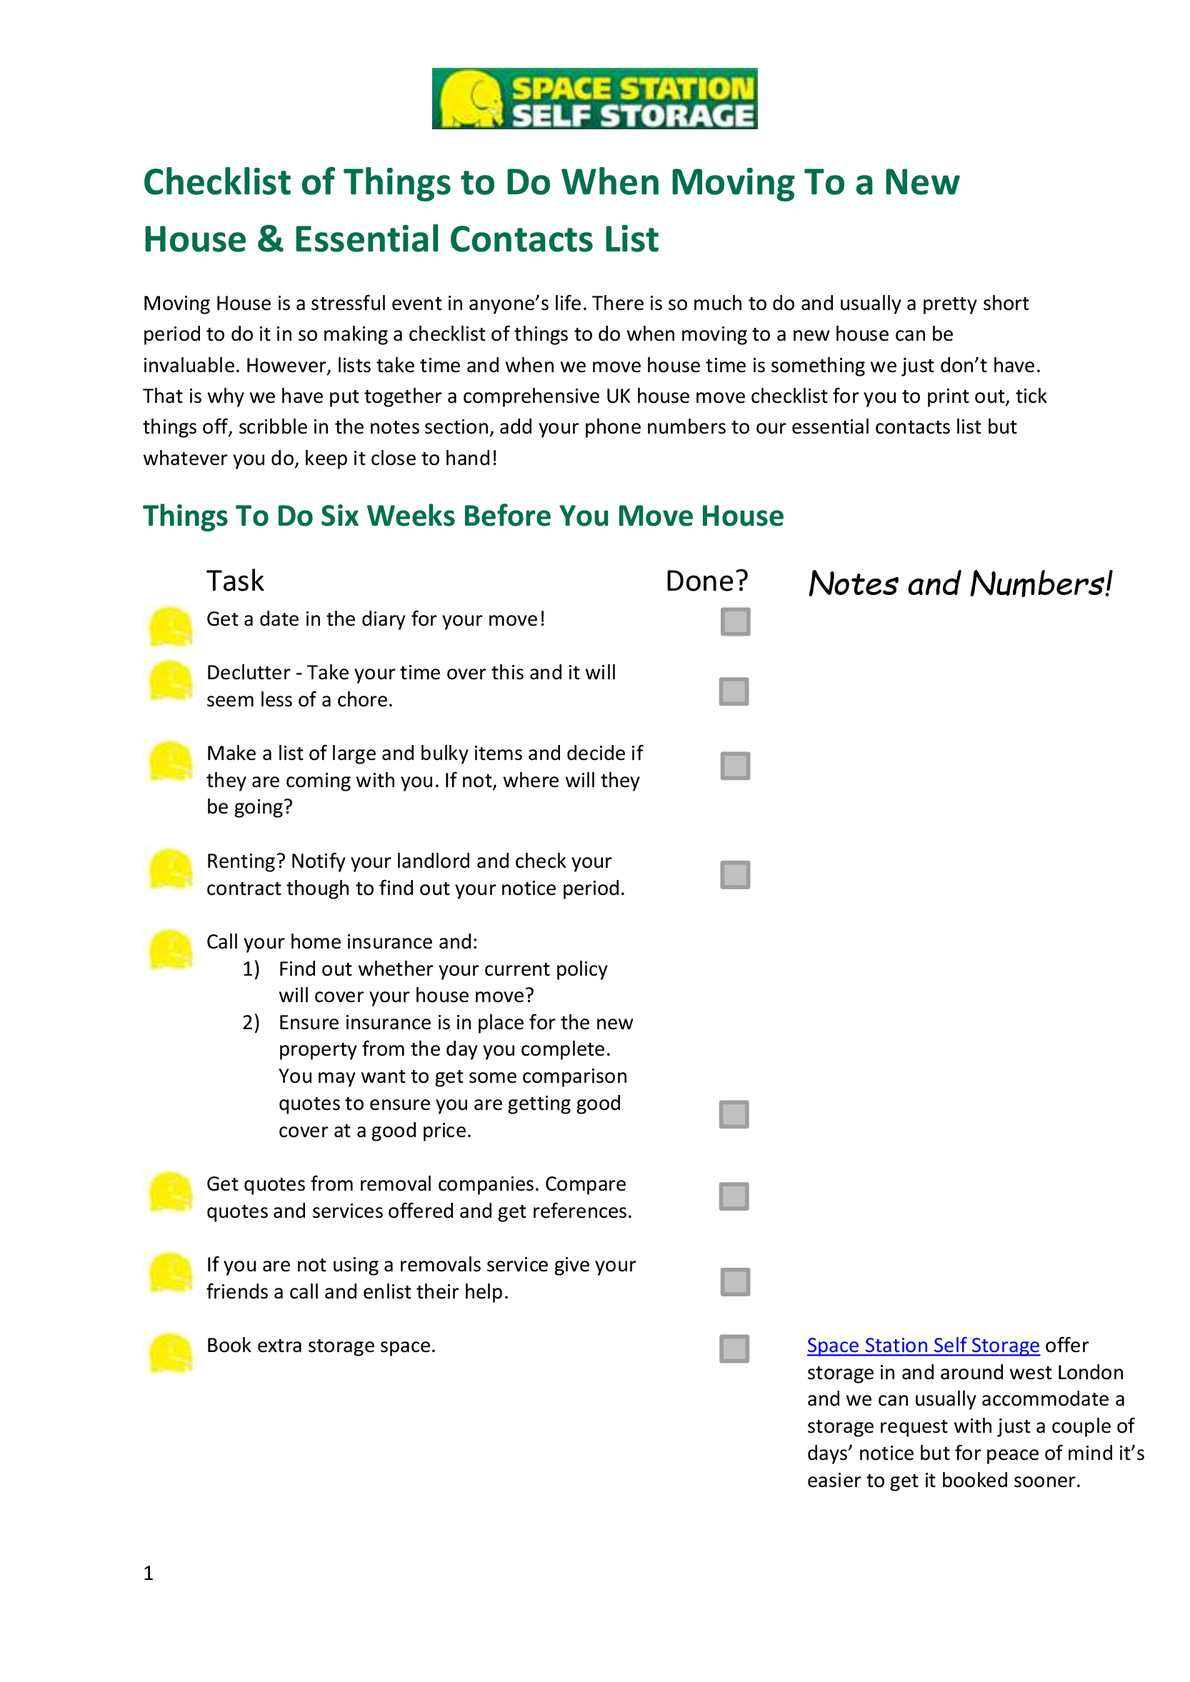 Calameo Checklist Of Things To Do When Moving To A New House,Appetizers Finger Food Party Food Ideas